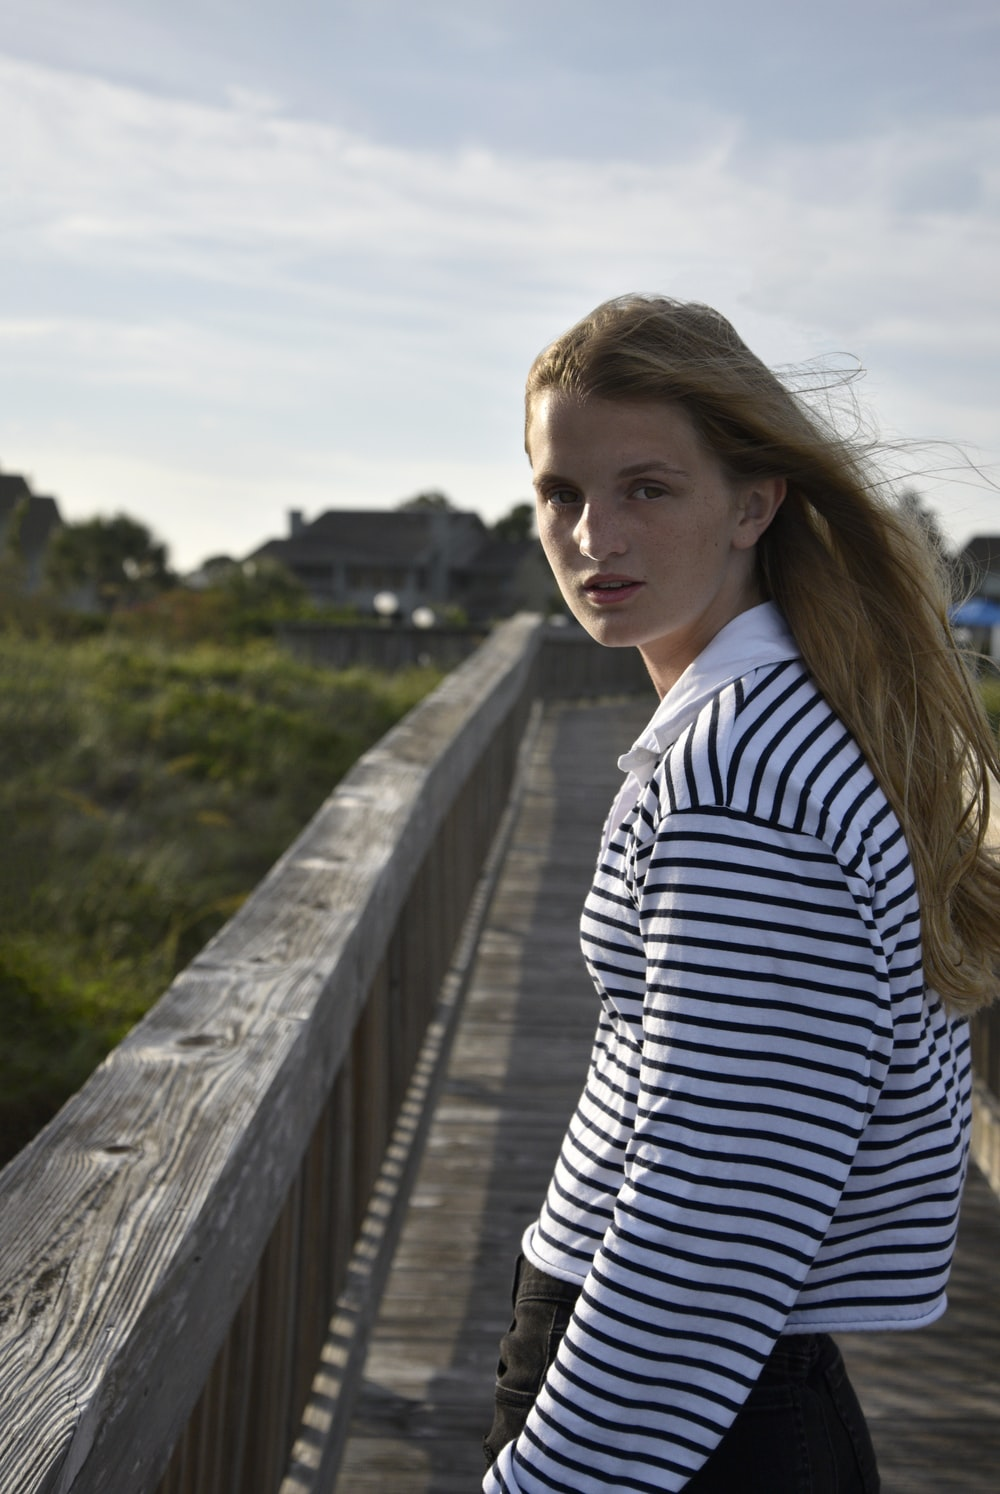 woman in white and black striped long sleeve shirt standing on gray concrete bridge during daytime